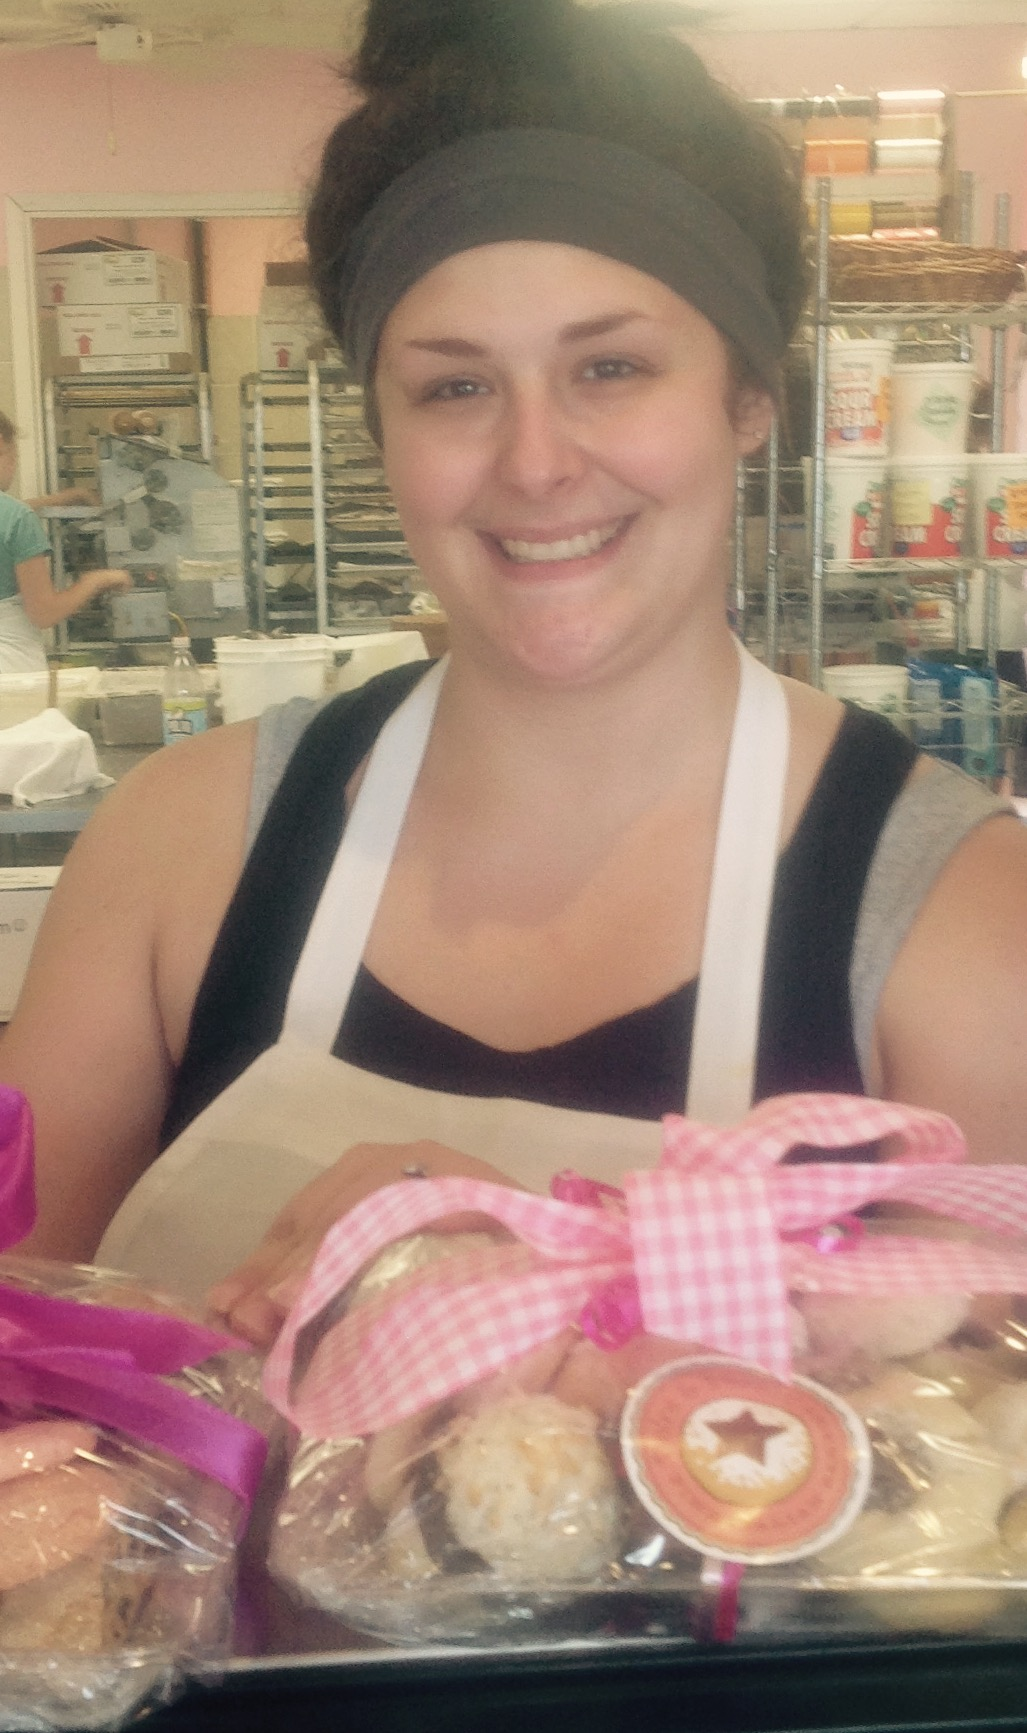 Brittney Honsinger is the Executive Chef at Dolce and Biscotti Italian Bakery